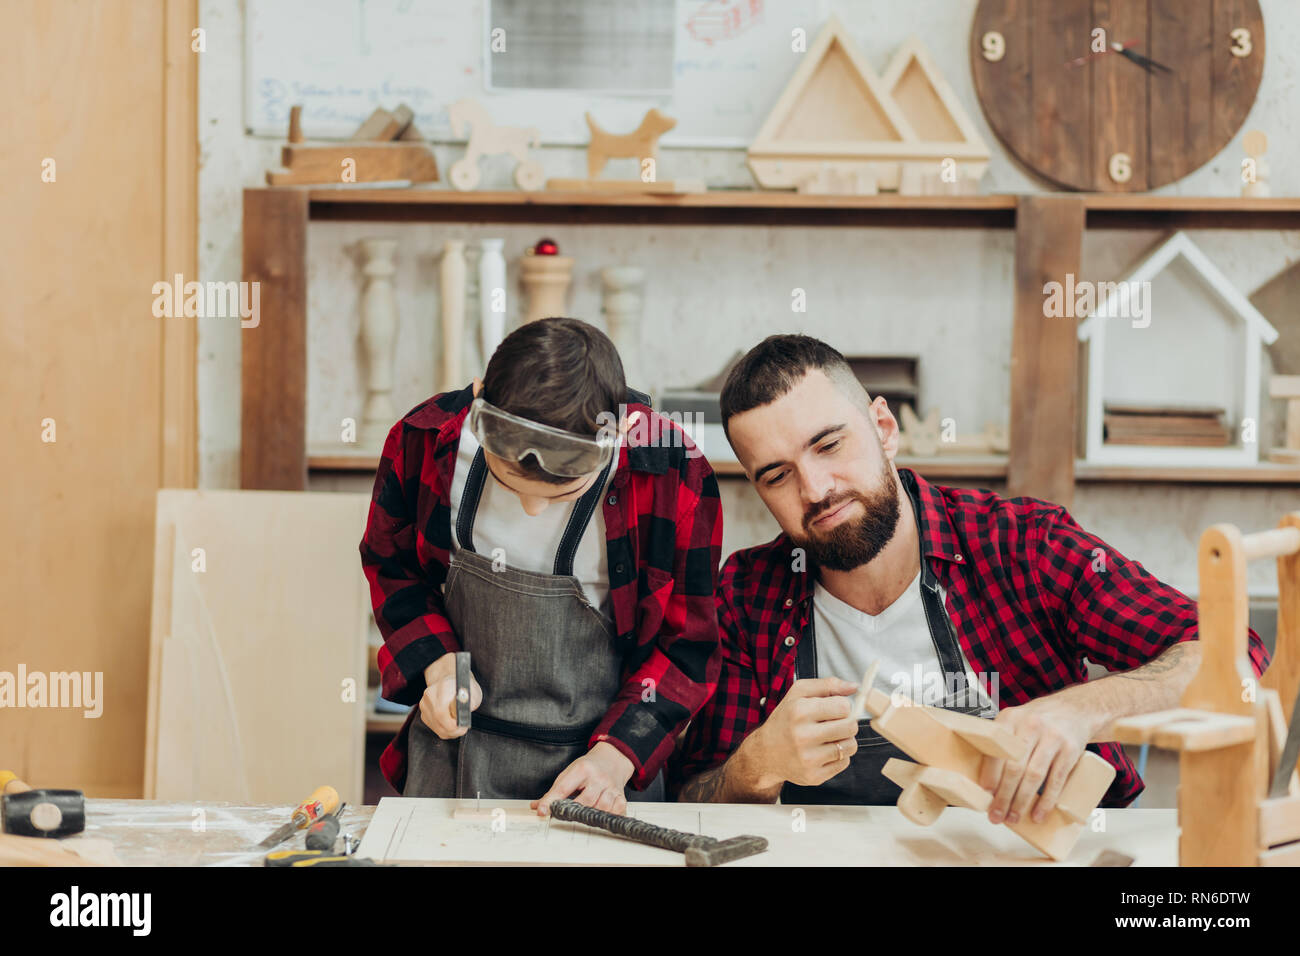 In Carpentry Coworking Studio Children And Youngsters Can Learn A